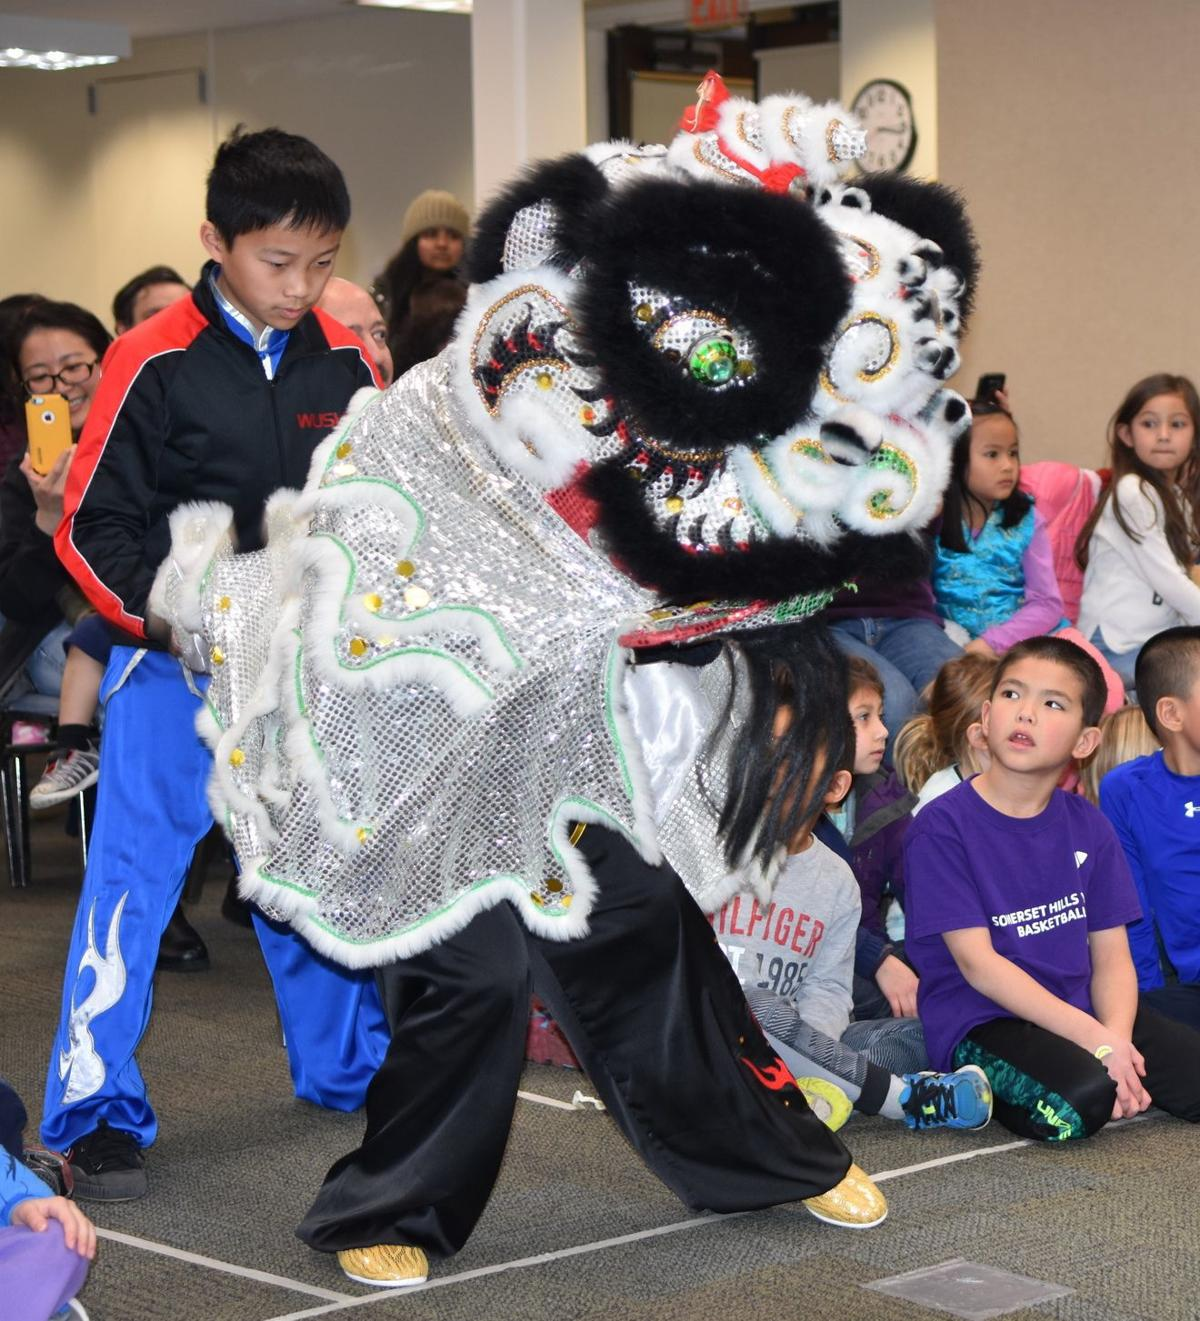 HAPPENINGS IN THE HILLS: Chinese New Year celebrated at Bernards Library